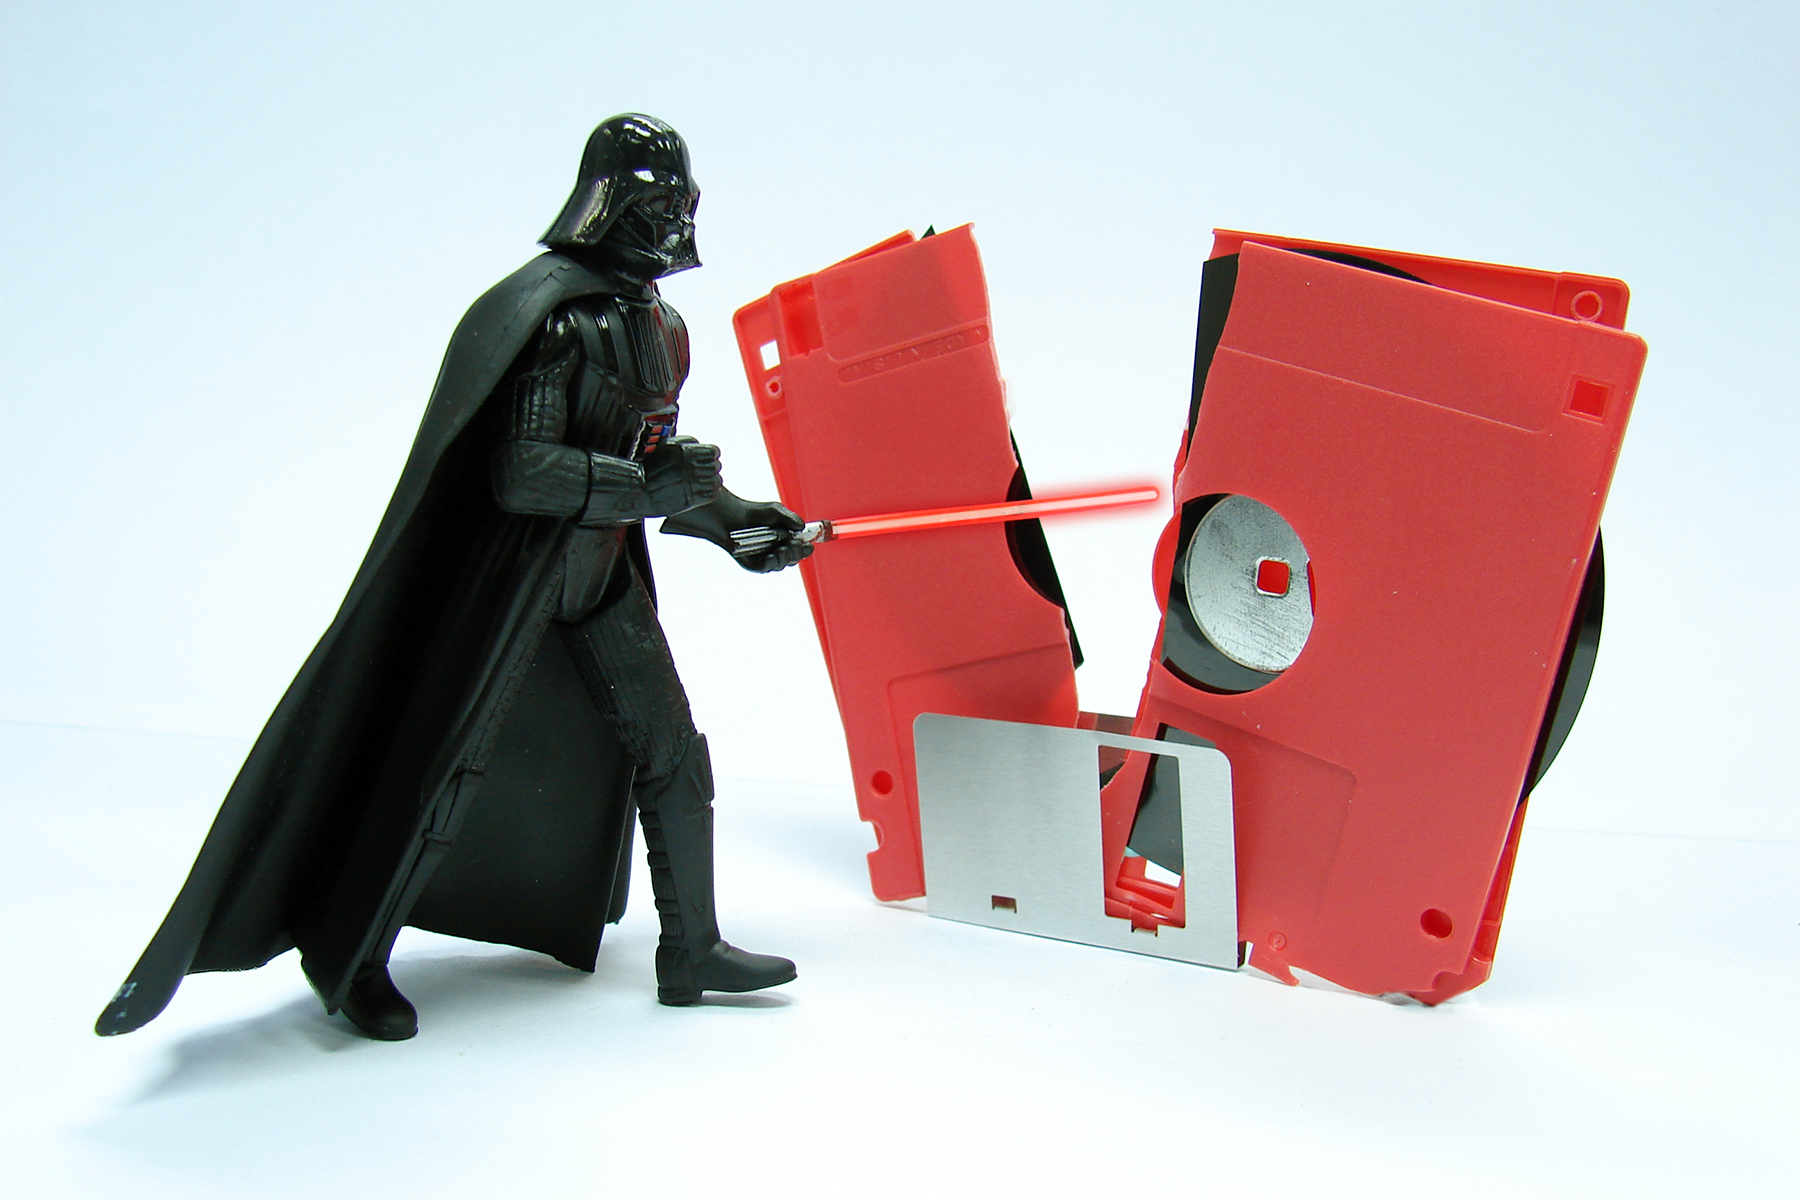 Darth Vader model destroying a floppy disk